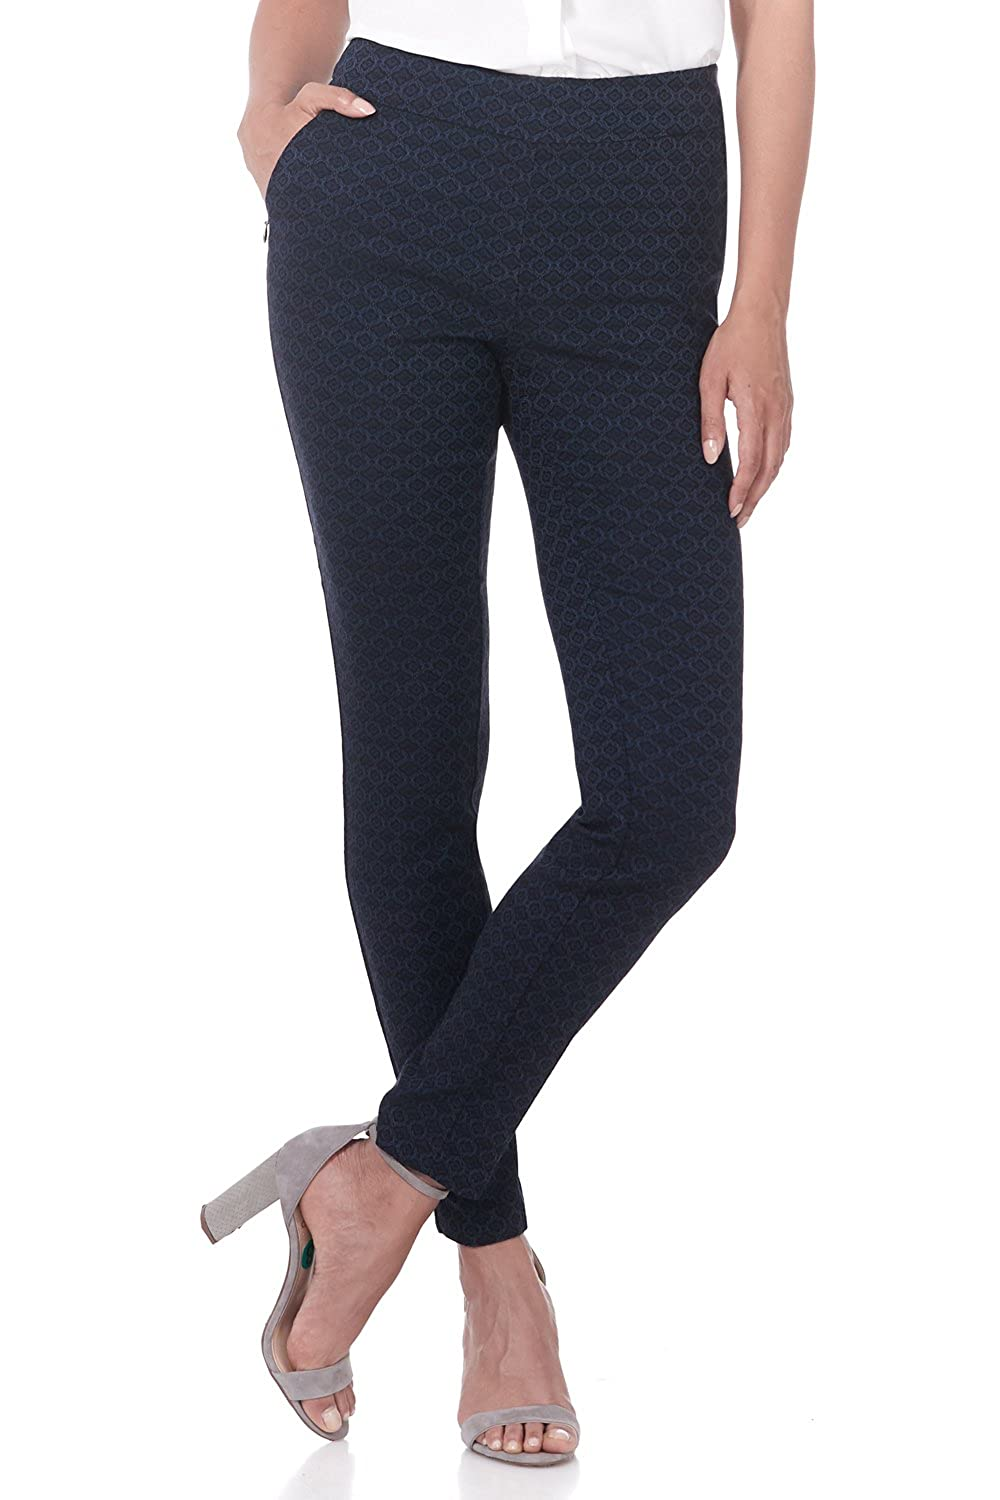 Navy Floral Rekucci Women's Ease in to Comfort Modern Stretch Skinny Pant w Tummy Control